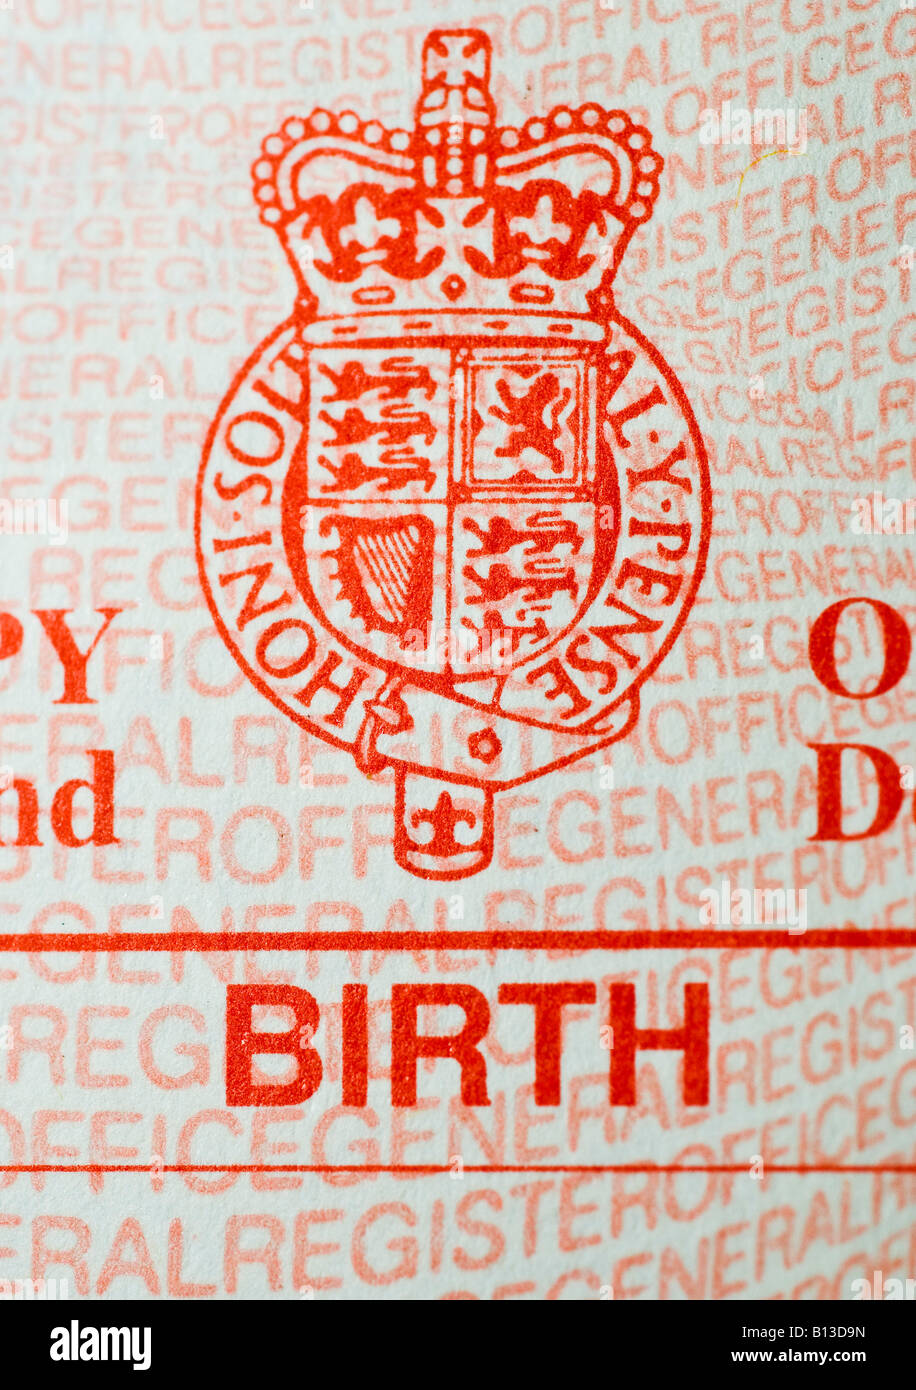 Birth certificate uk stock photos birth certificate uk stock uk birth certificate stock image aiddatafo Gallery